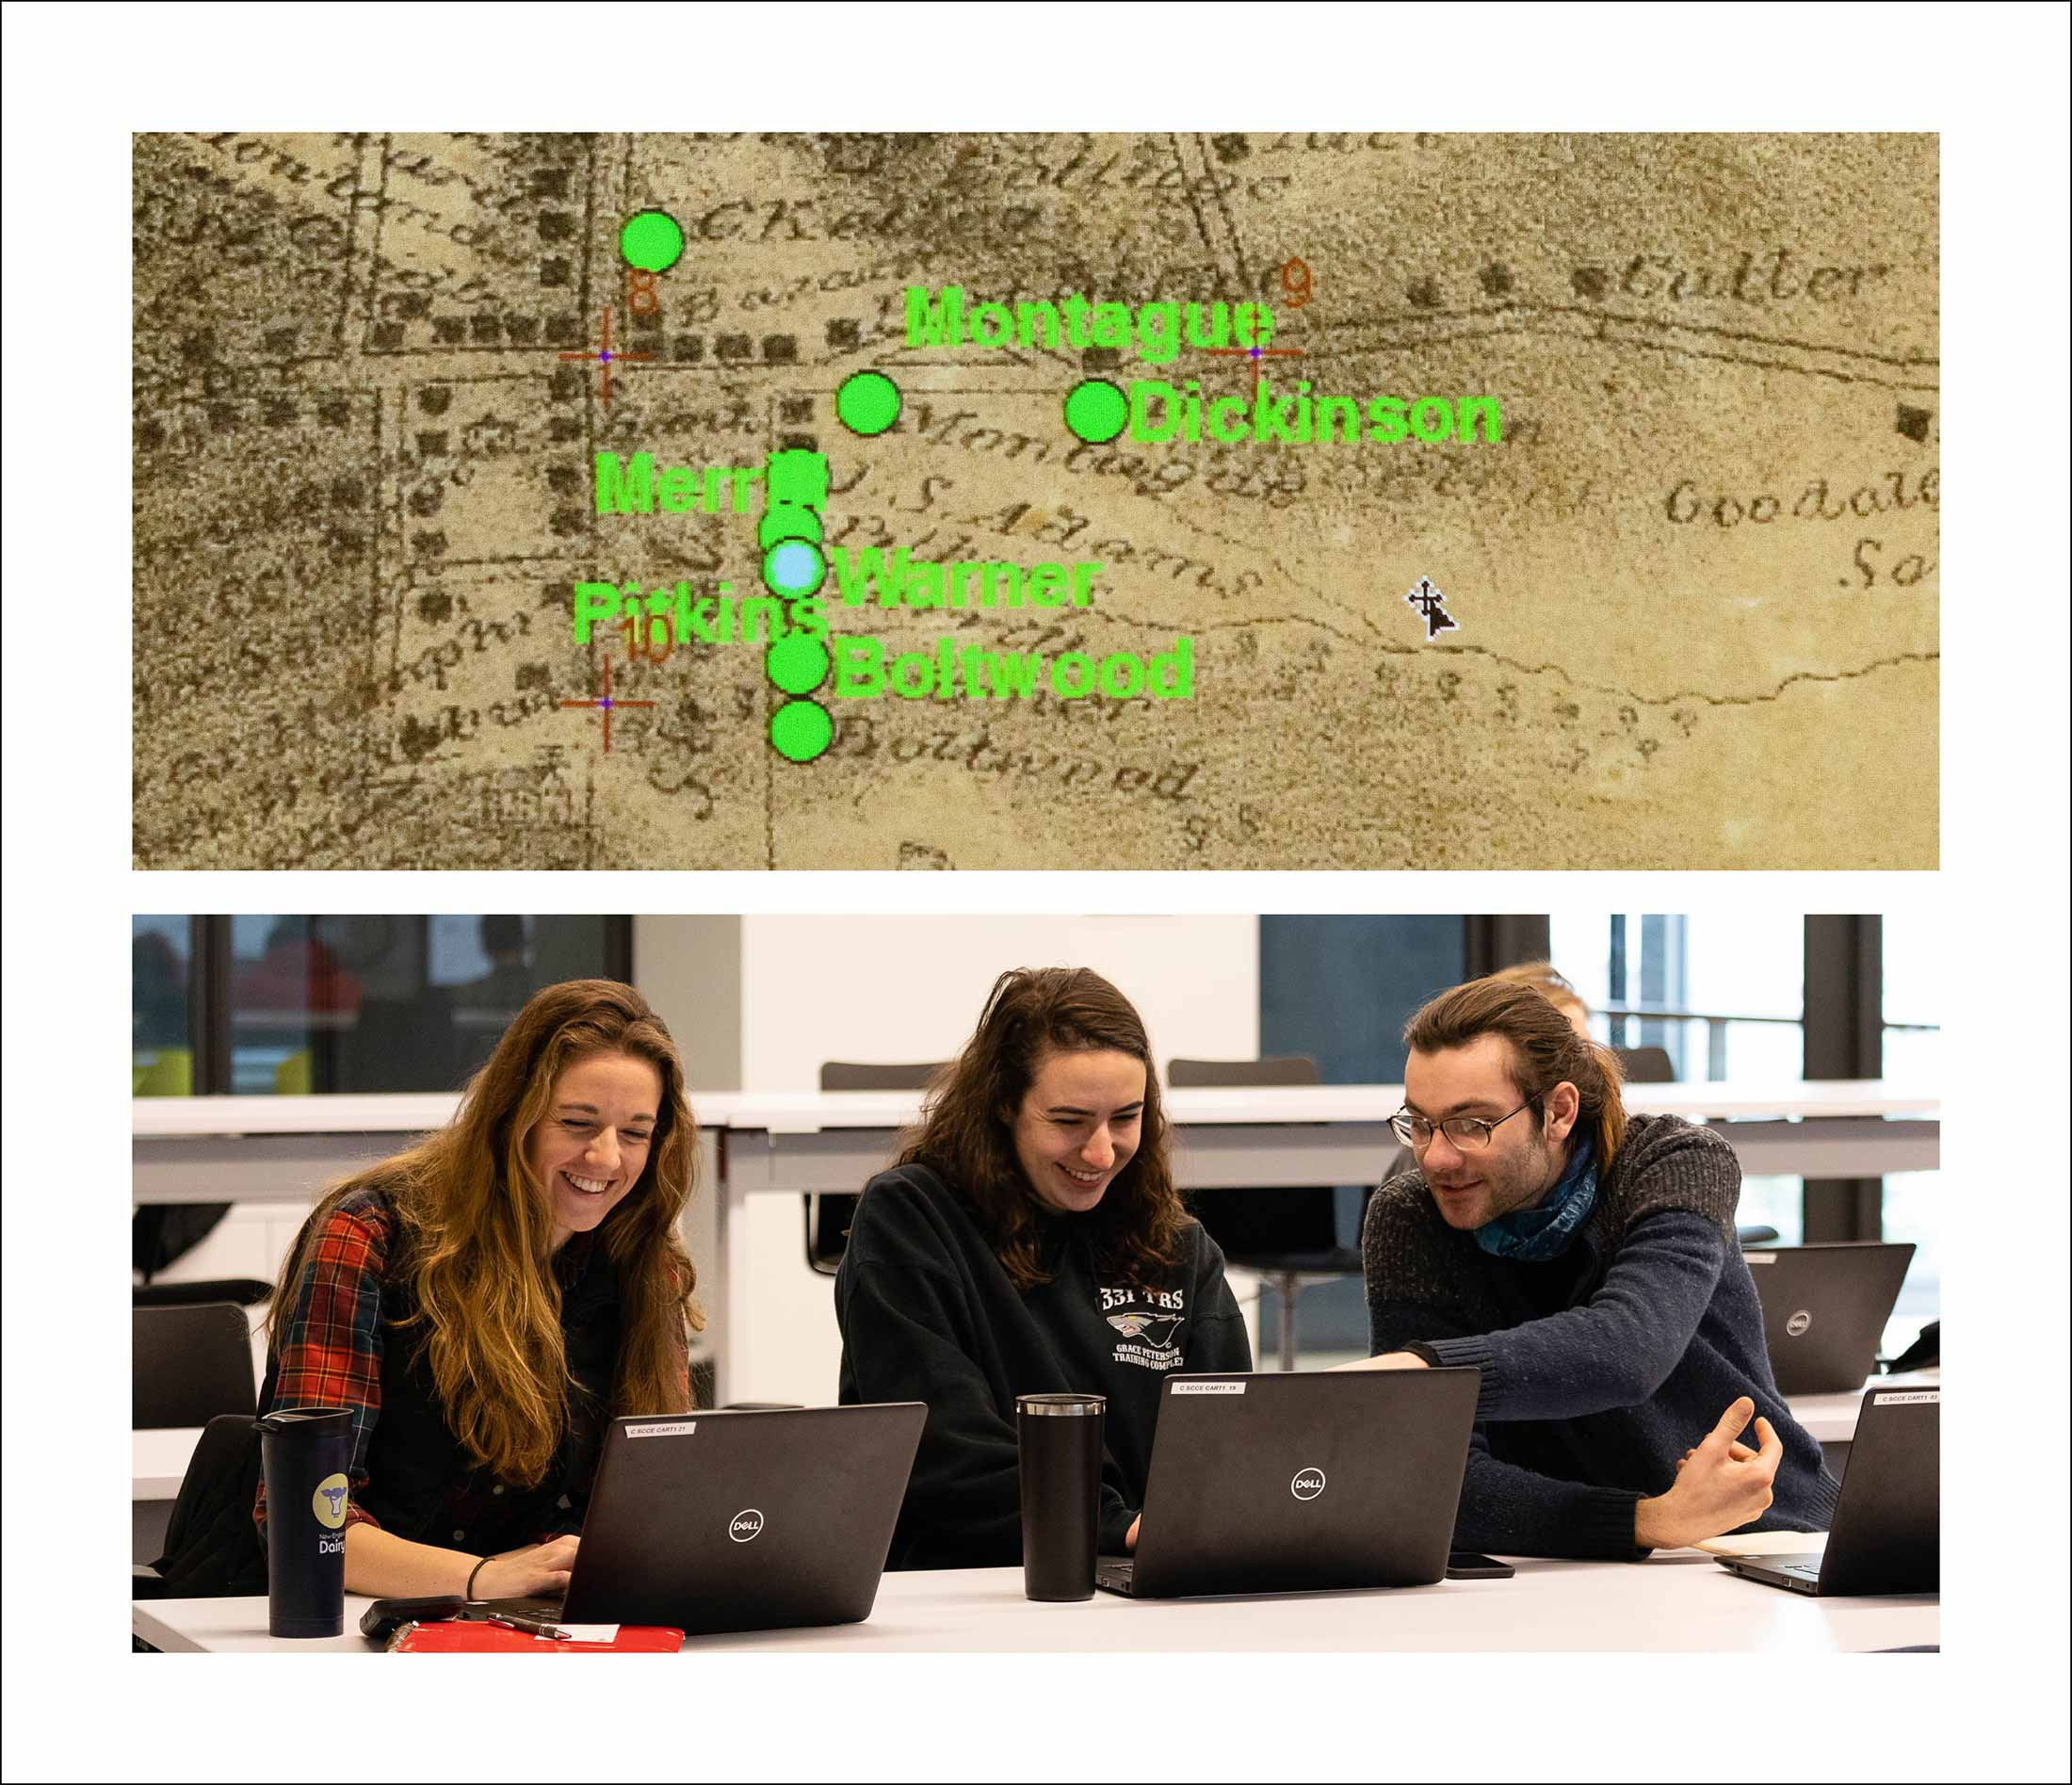 Three students gather around several laptops as well as an image of an old map of Amherst, MA.